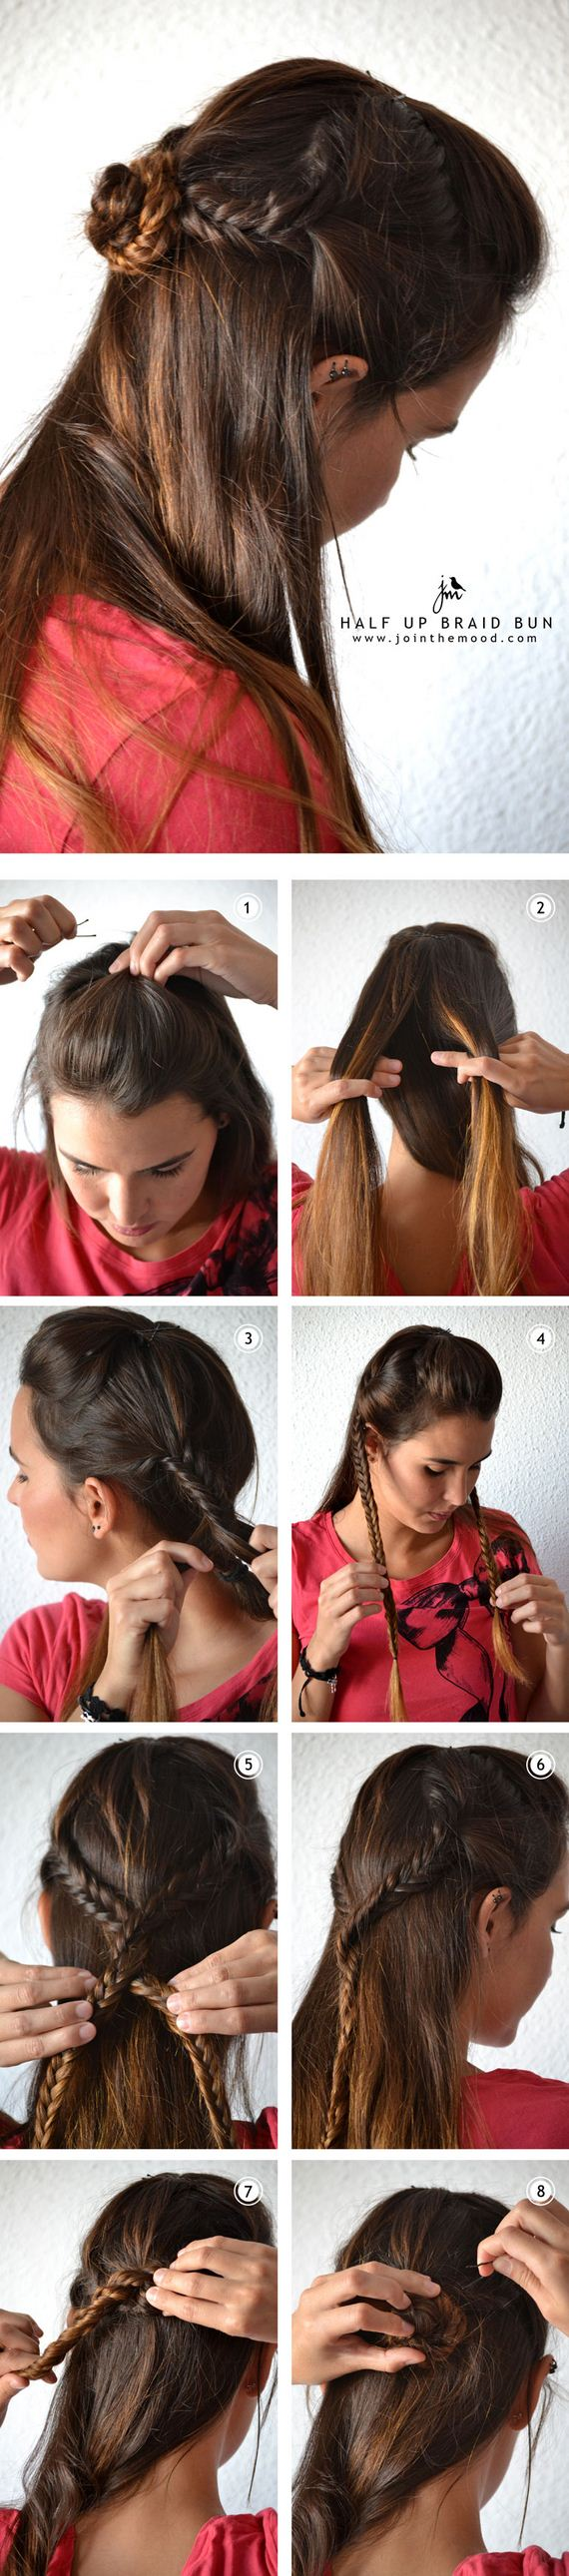 09-short-hair-braided-tutorial